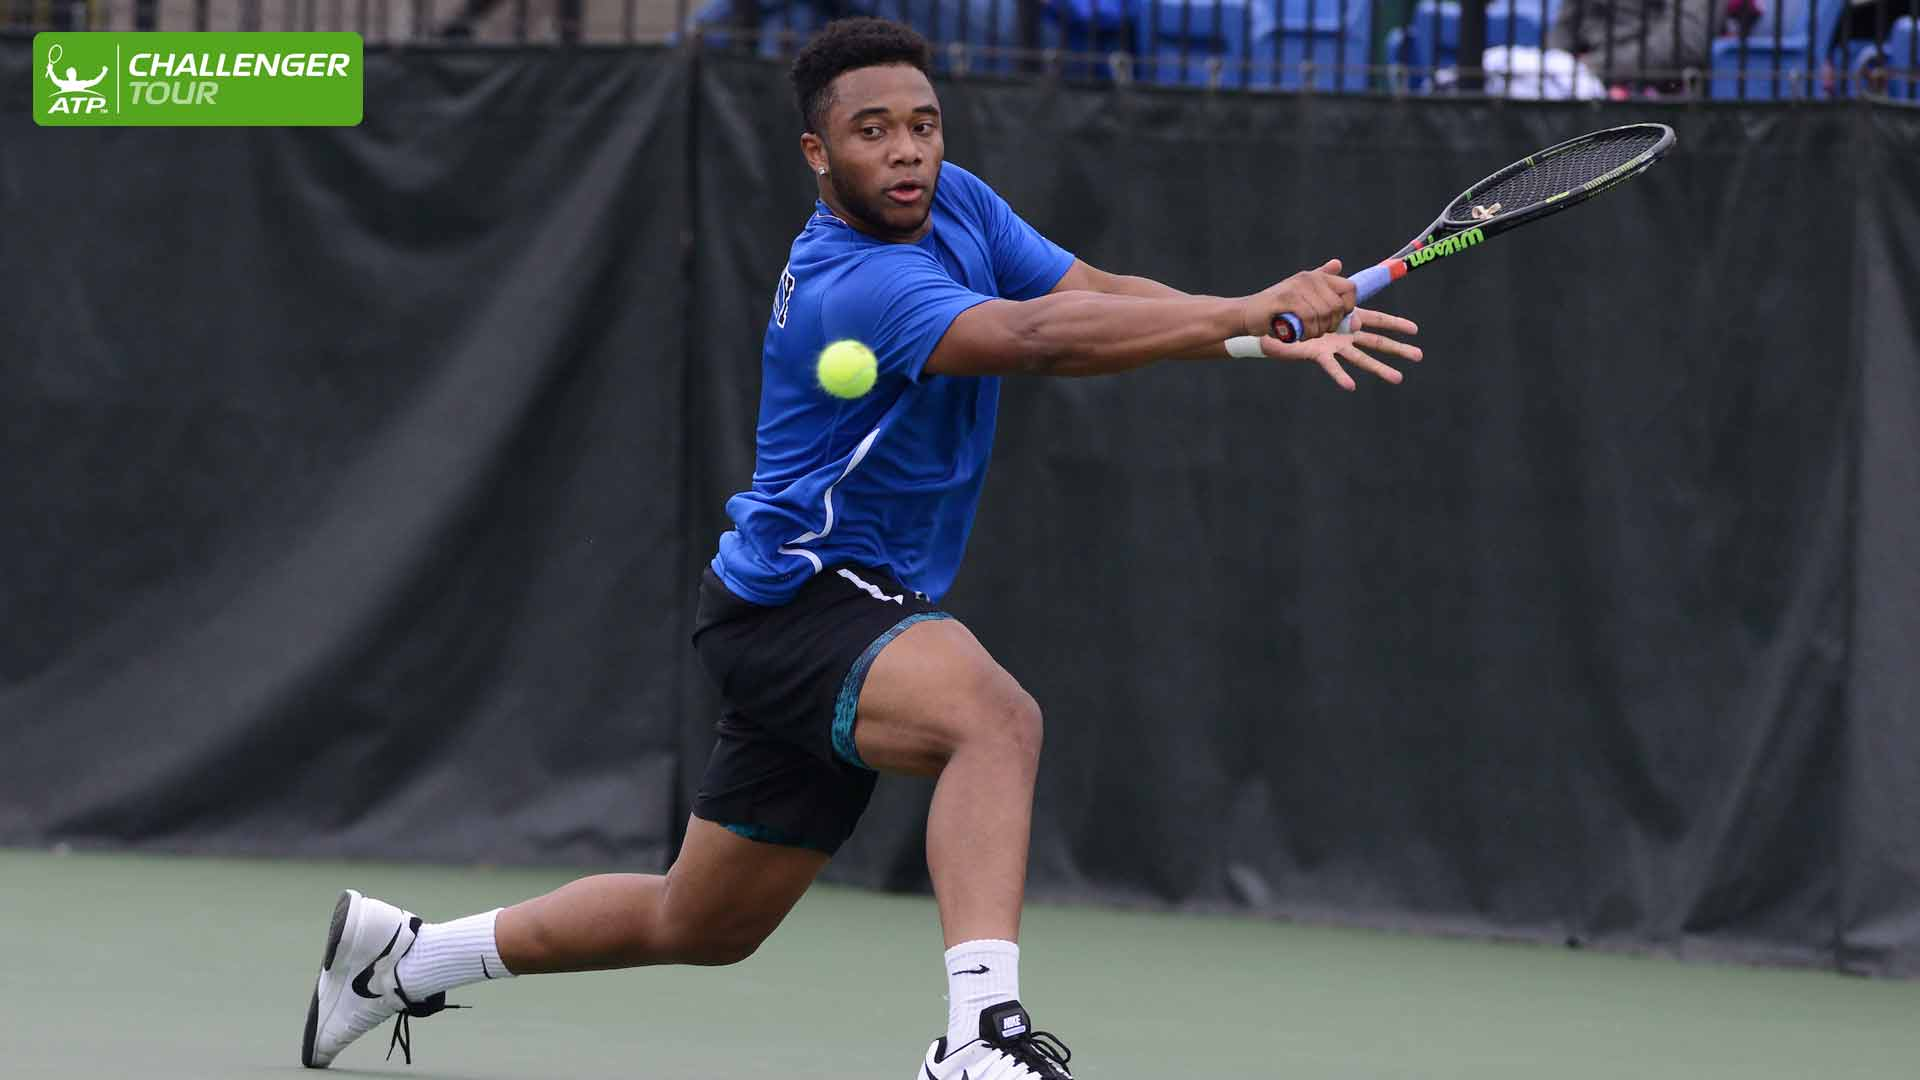 William Bushamuka competes in his first ATP Challenger Tour main draw match in Lexington.